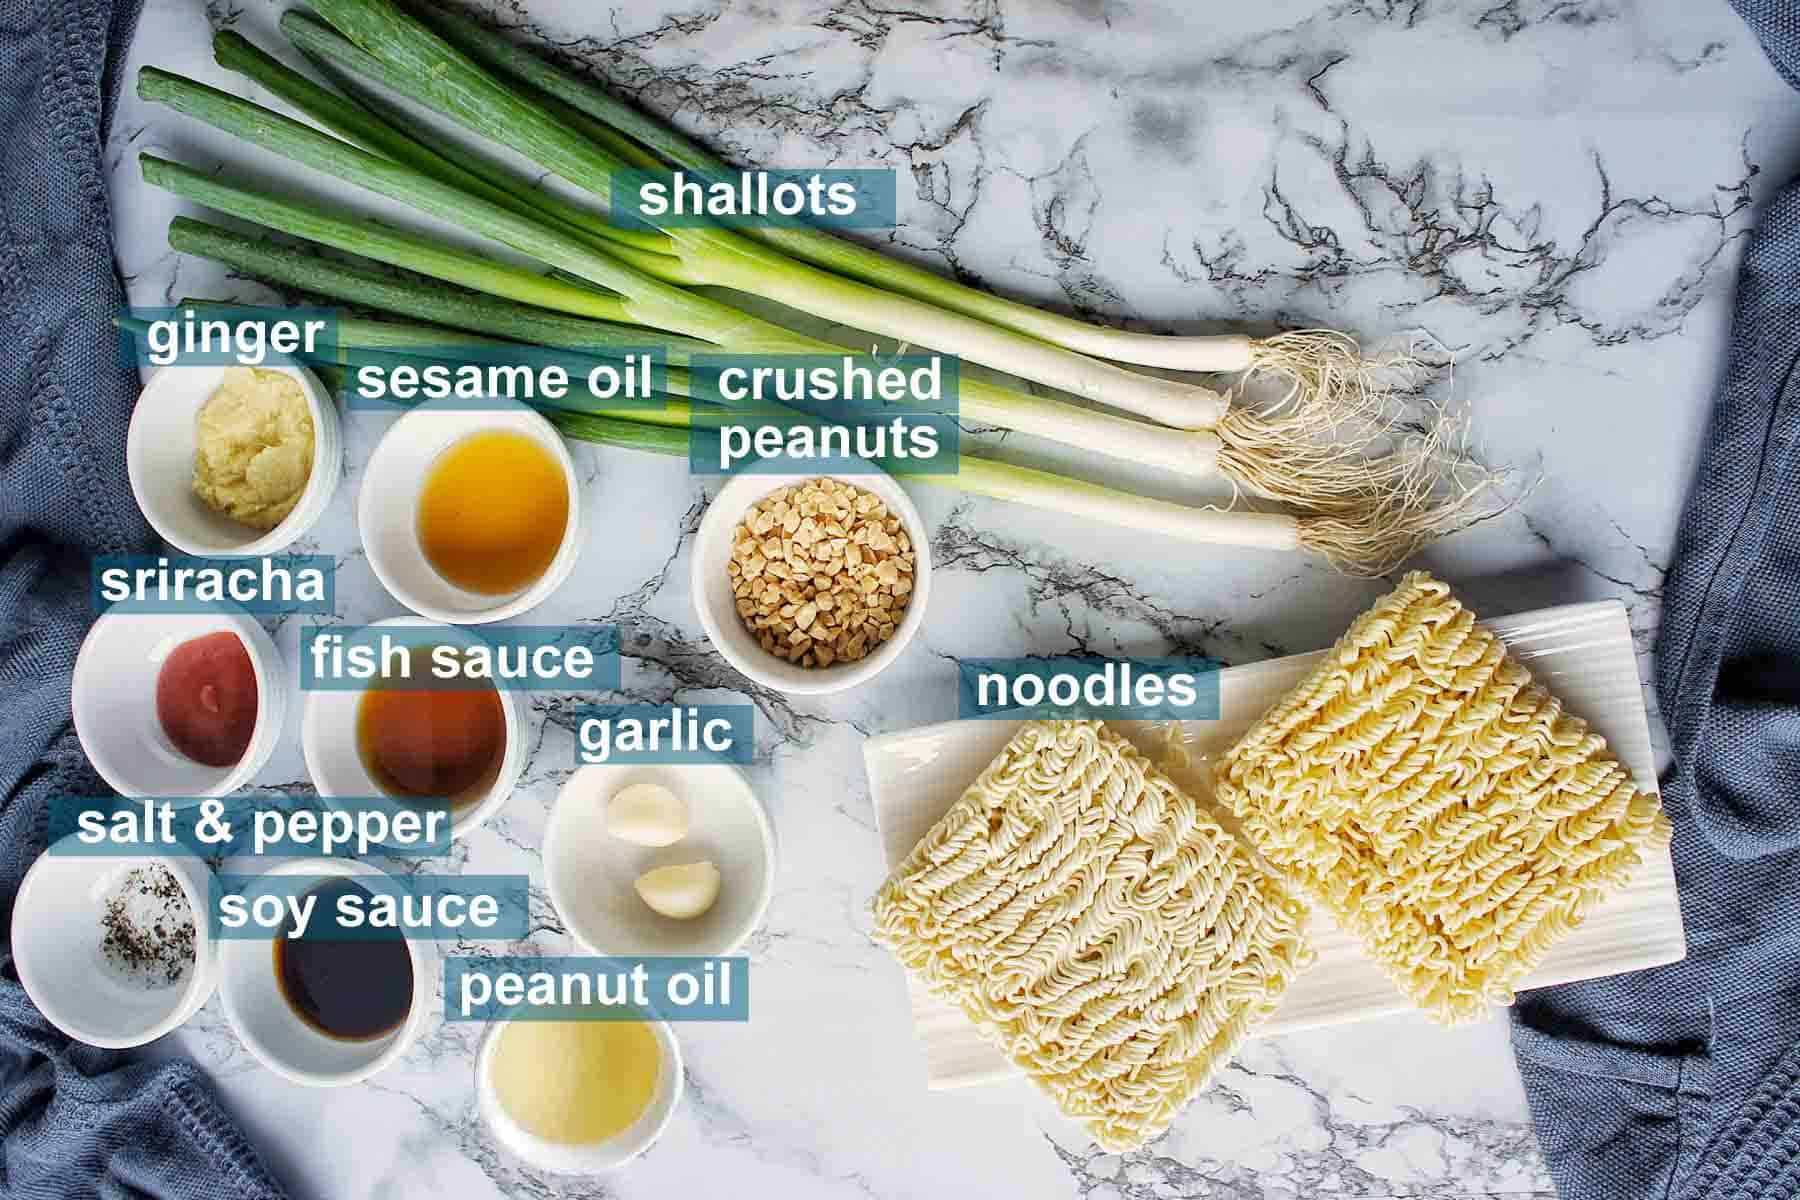 Ingredients for ginger scallion noodles on a marble background with text labels